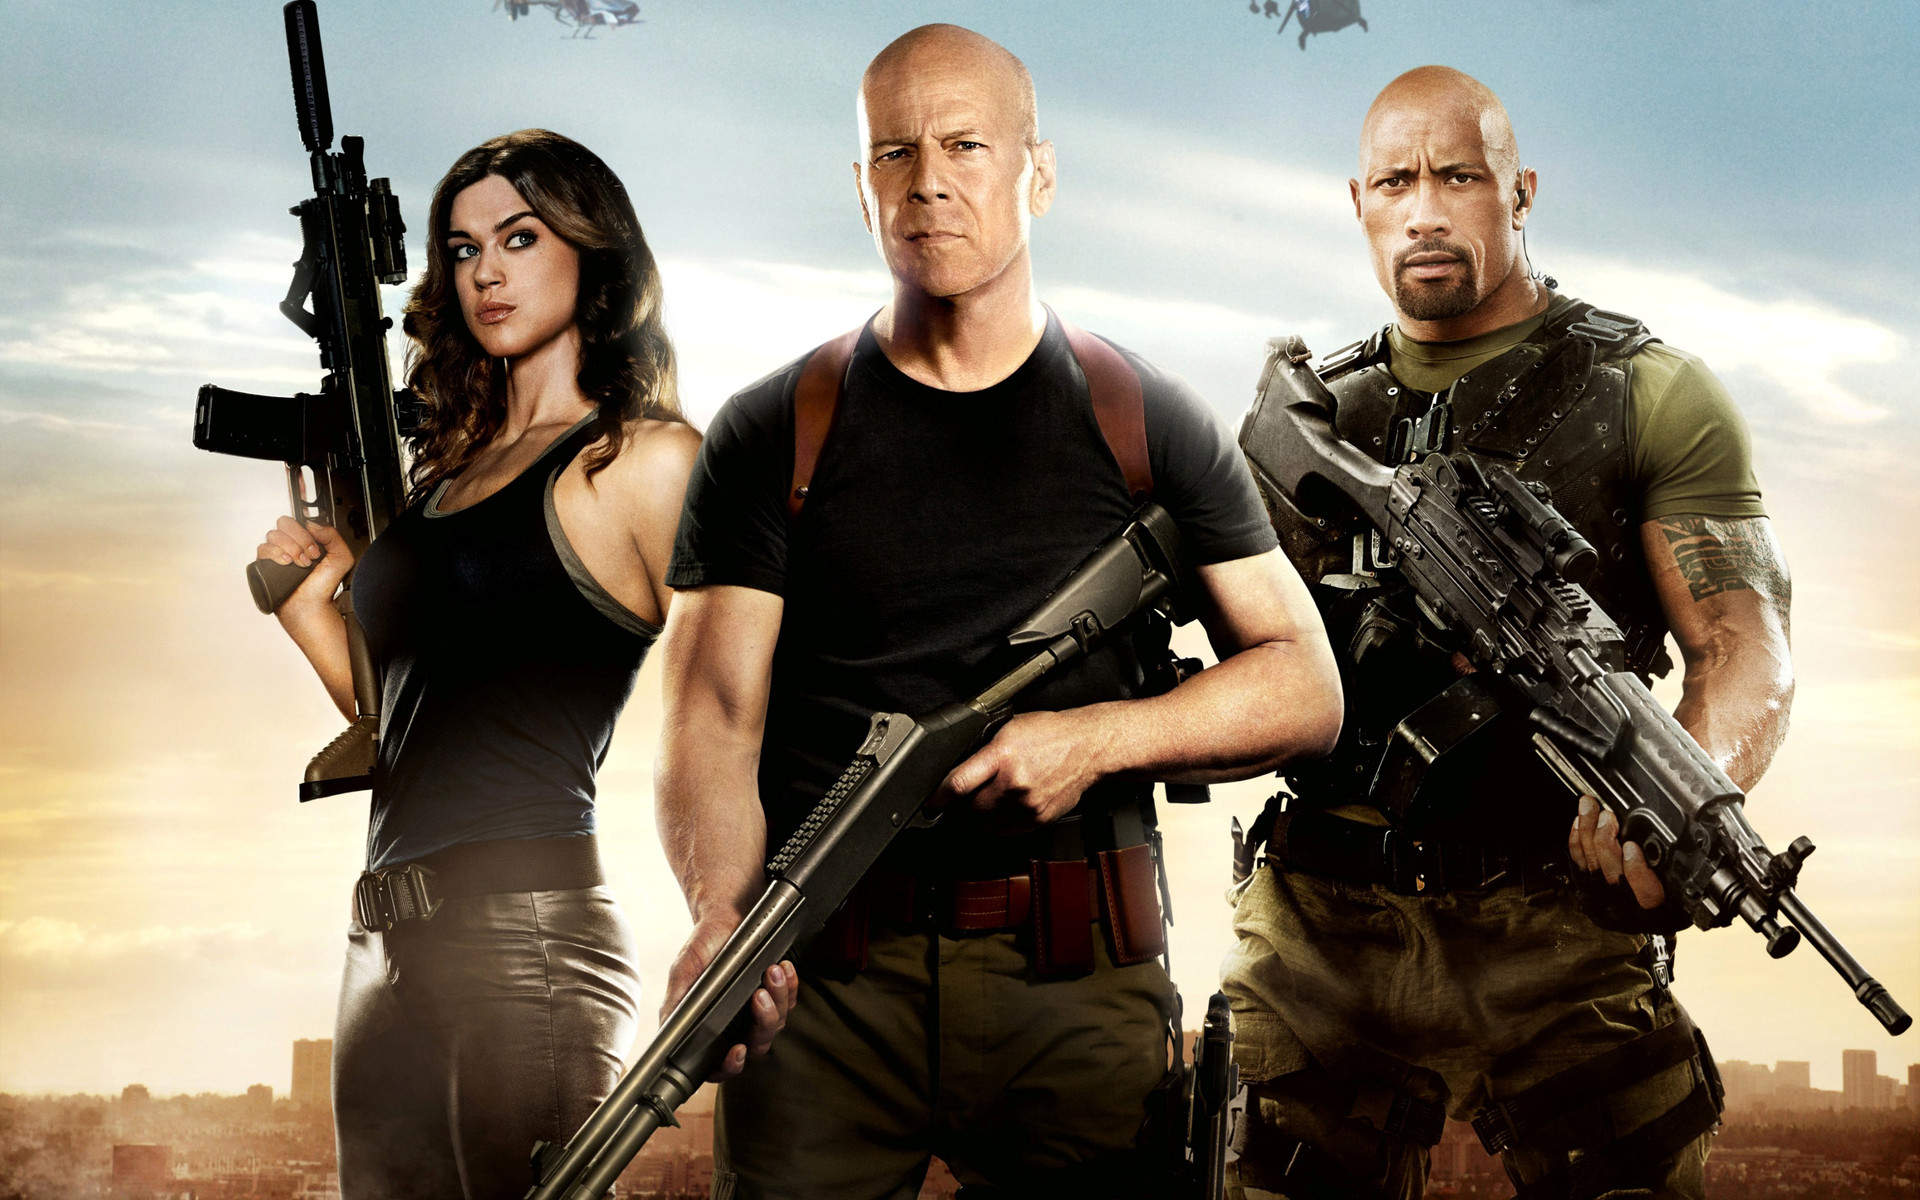 1920x1200 Gi Joe Retaliation Wallpapers HD wallpapers - Gi Joe Retaliation Wallpapers